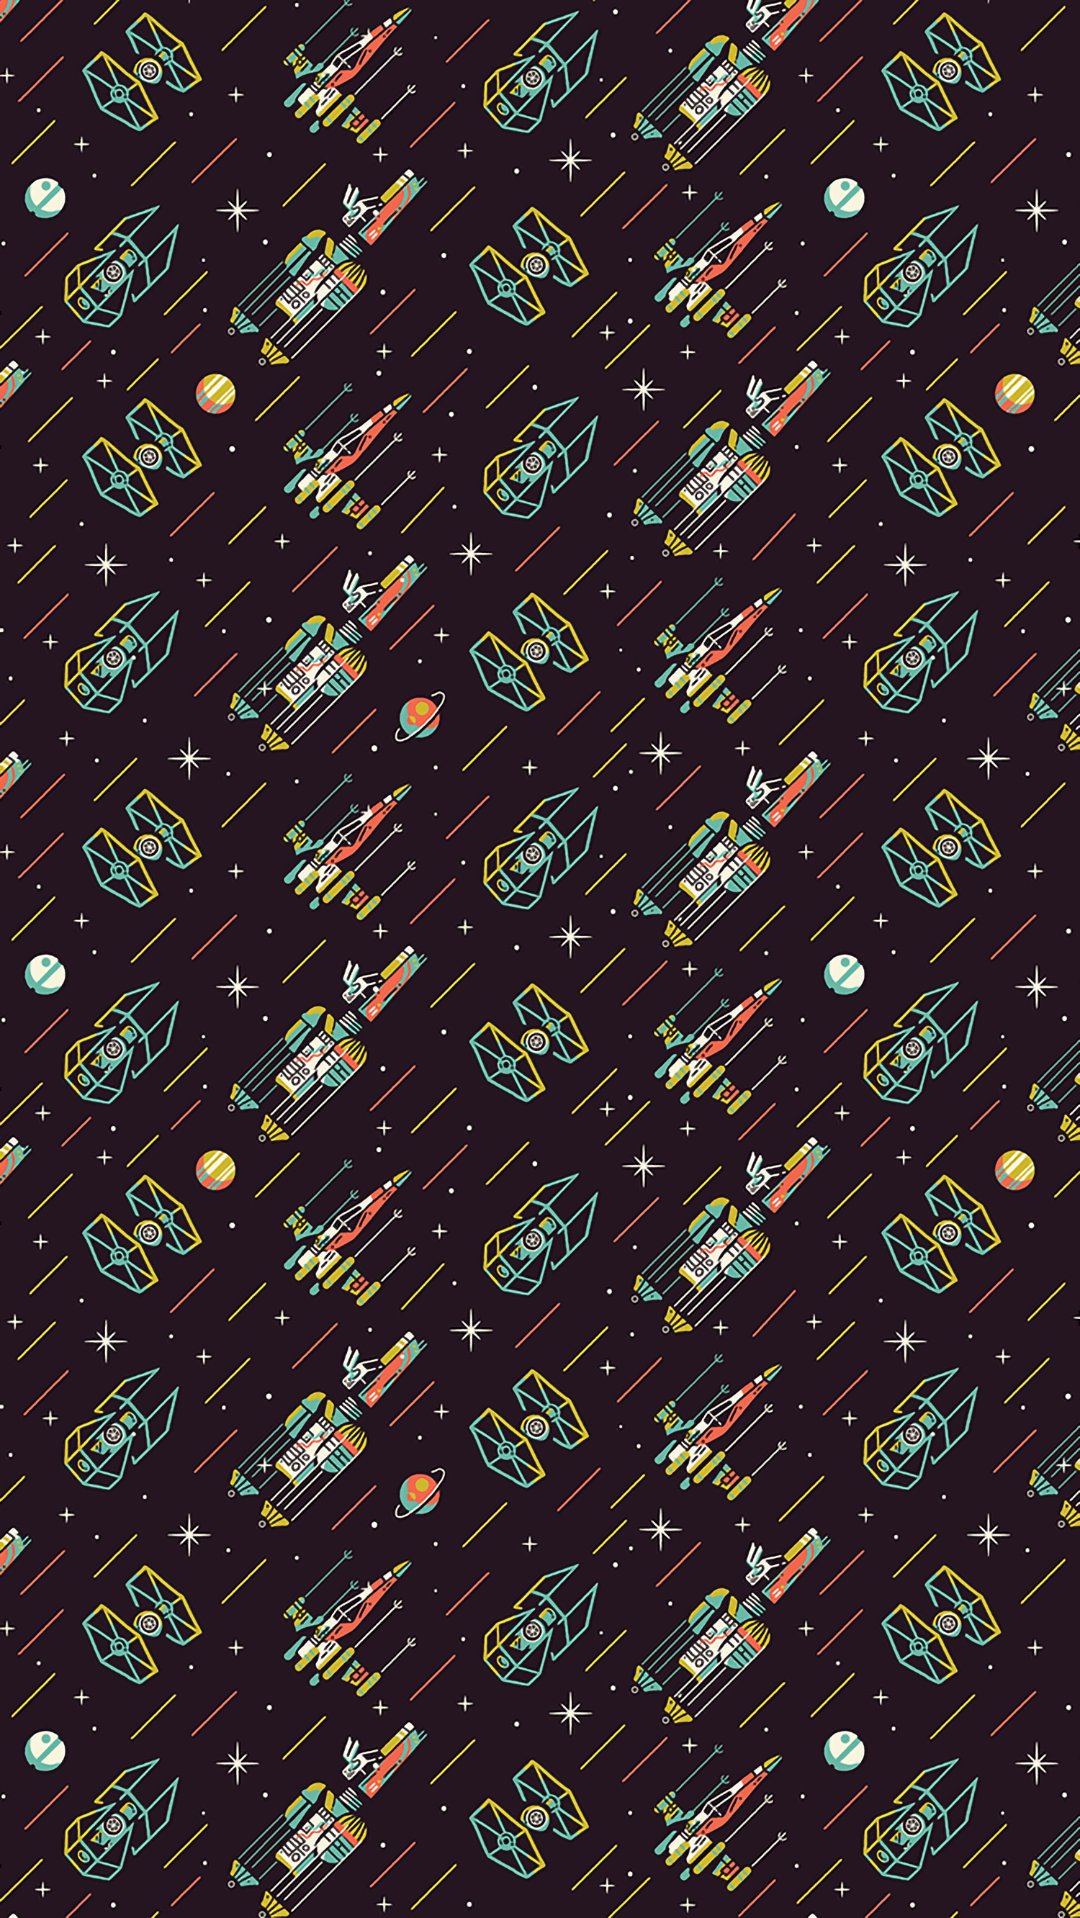 Star Wars Phone Wallpaper Collection Heroscreen Cool Wallpapers